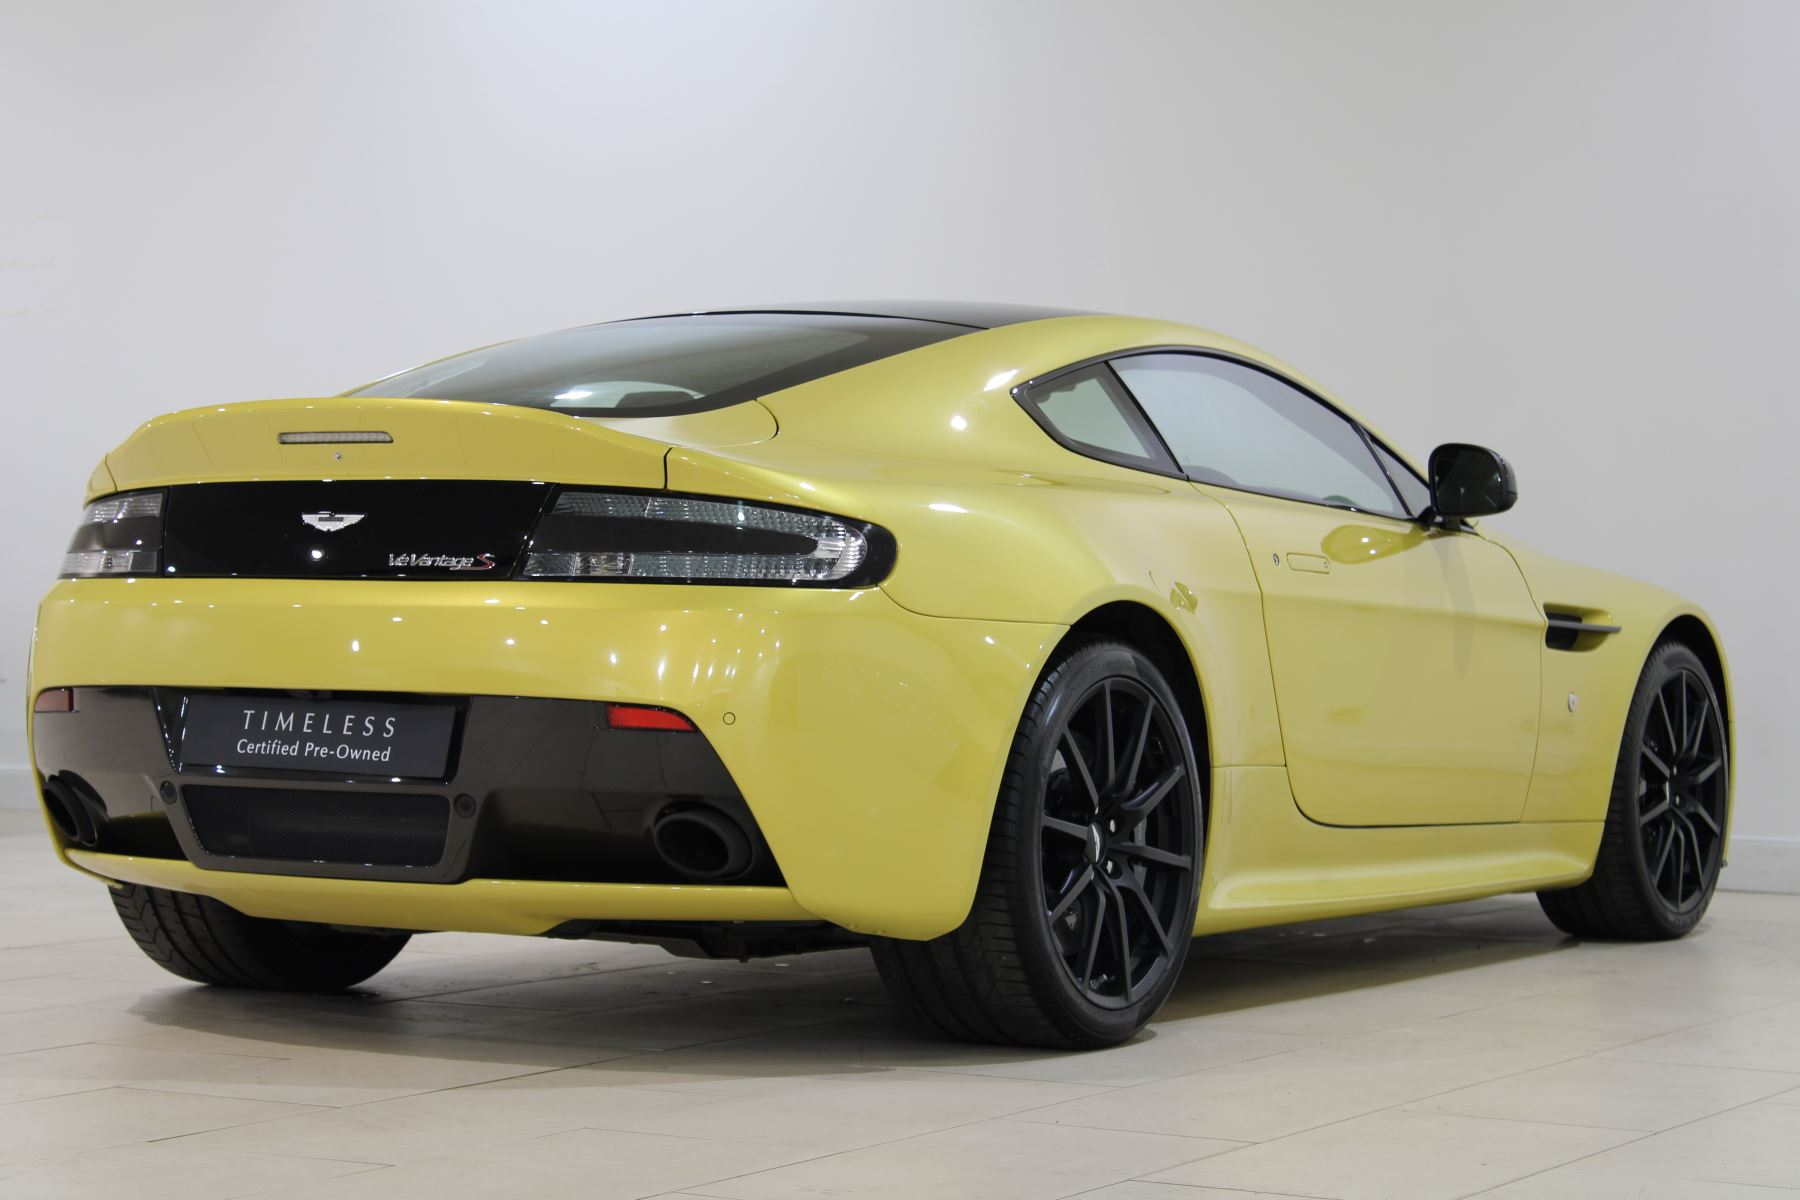 Aston Martin V12 Vantage S Coupe S 2dr Sportshift III image 7